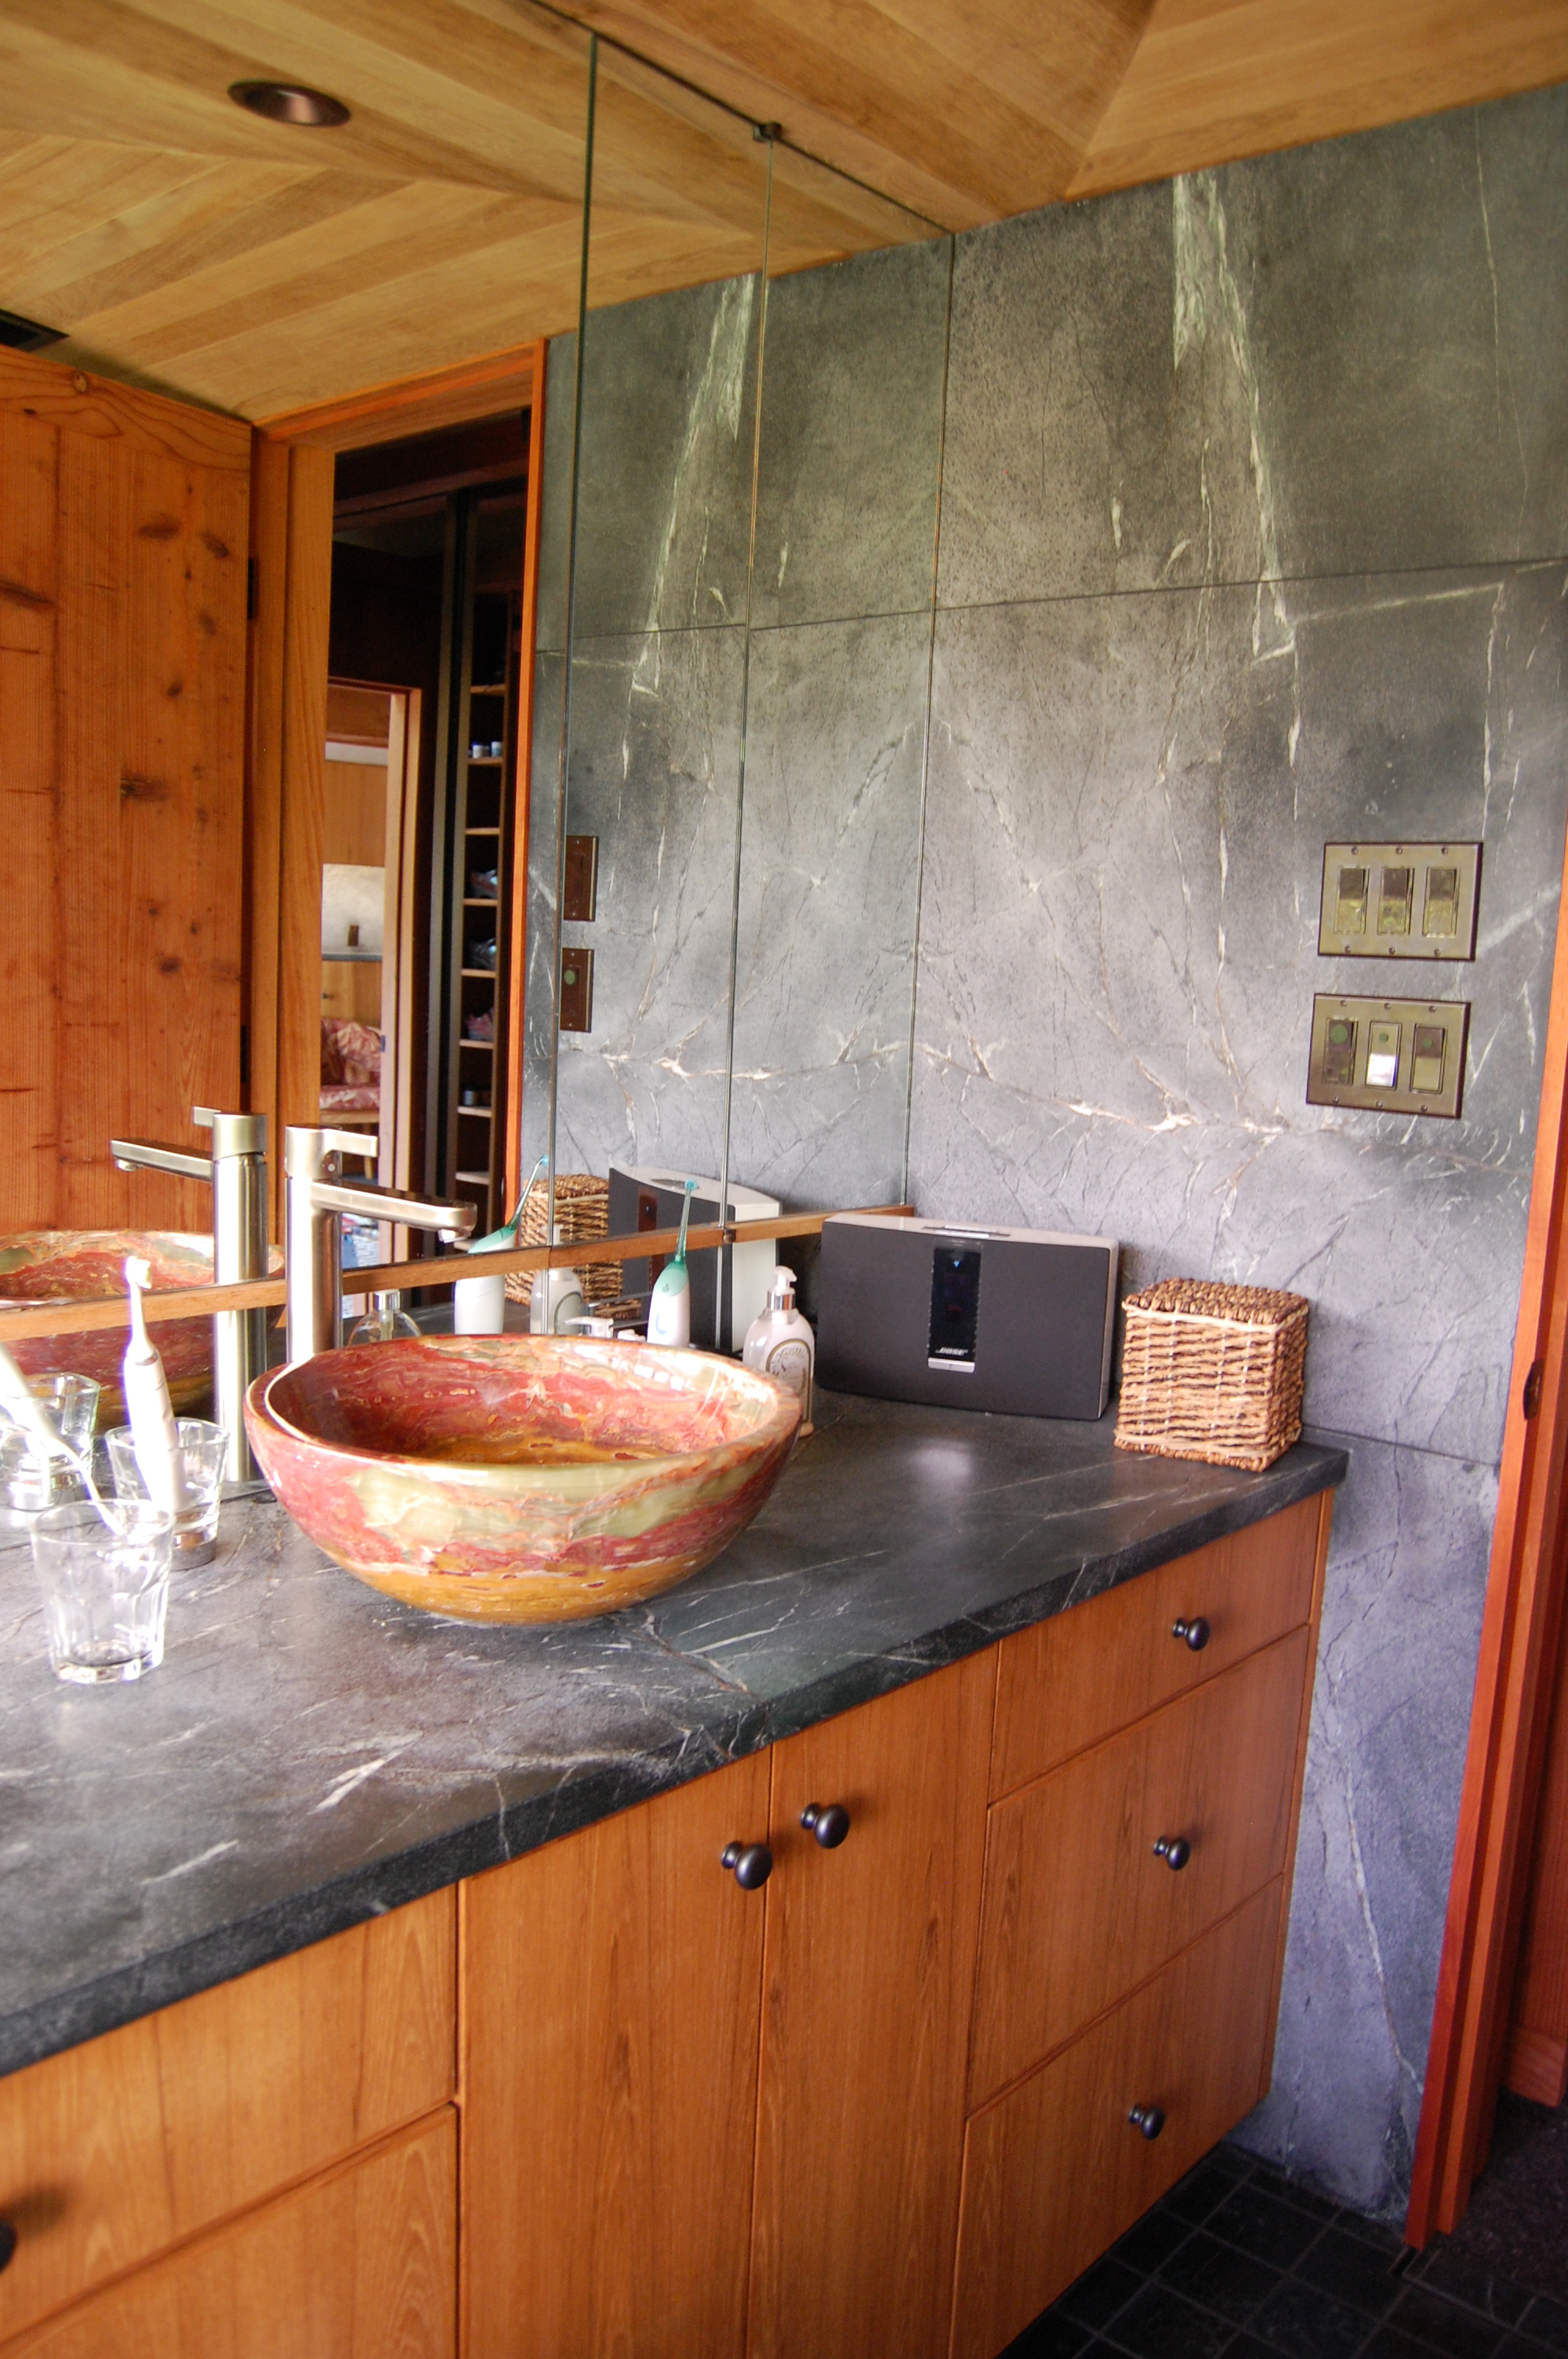 DSC_4139 DSC_4130 DSC_4122 DSC_4135 DSC_4128 DSC_4143 DSC_4140. However You  Create Your Soapstone Bathroom ...